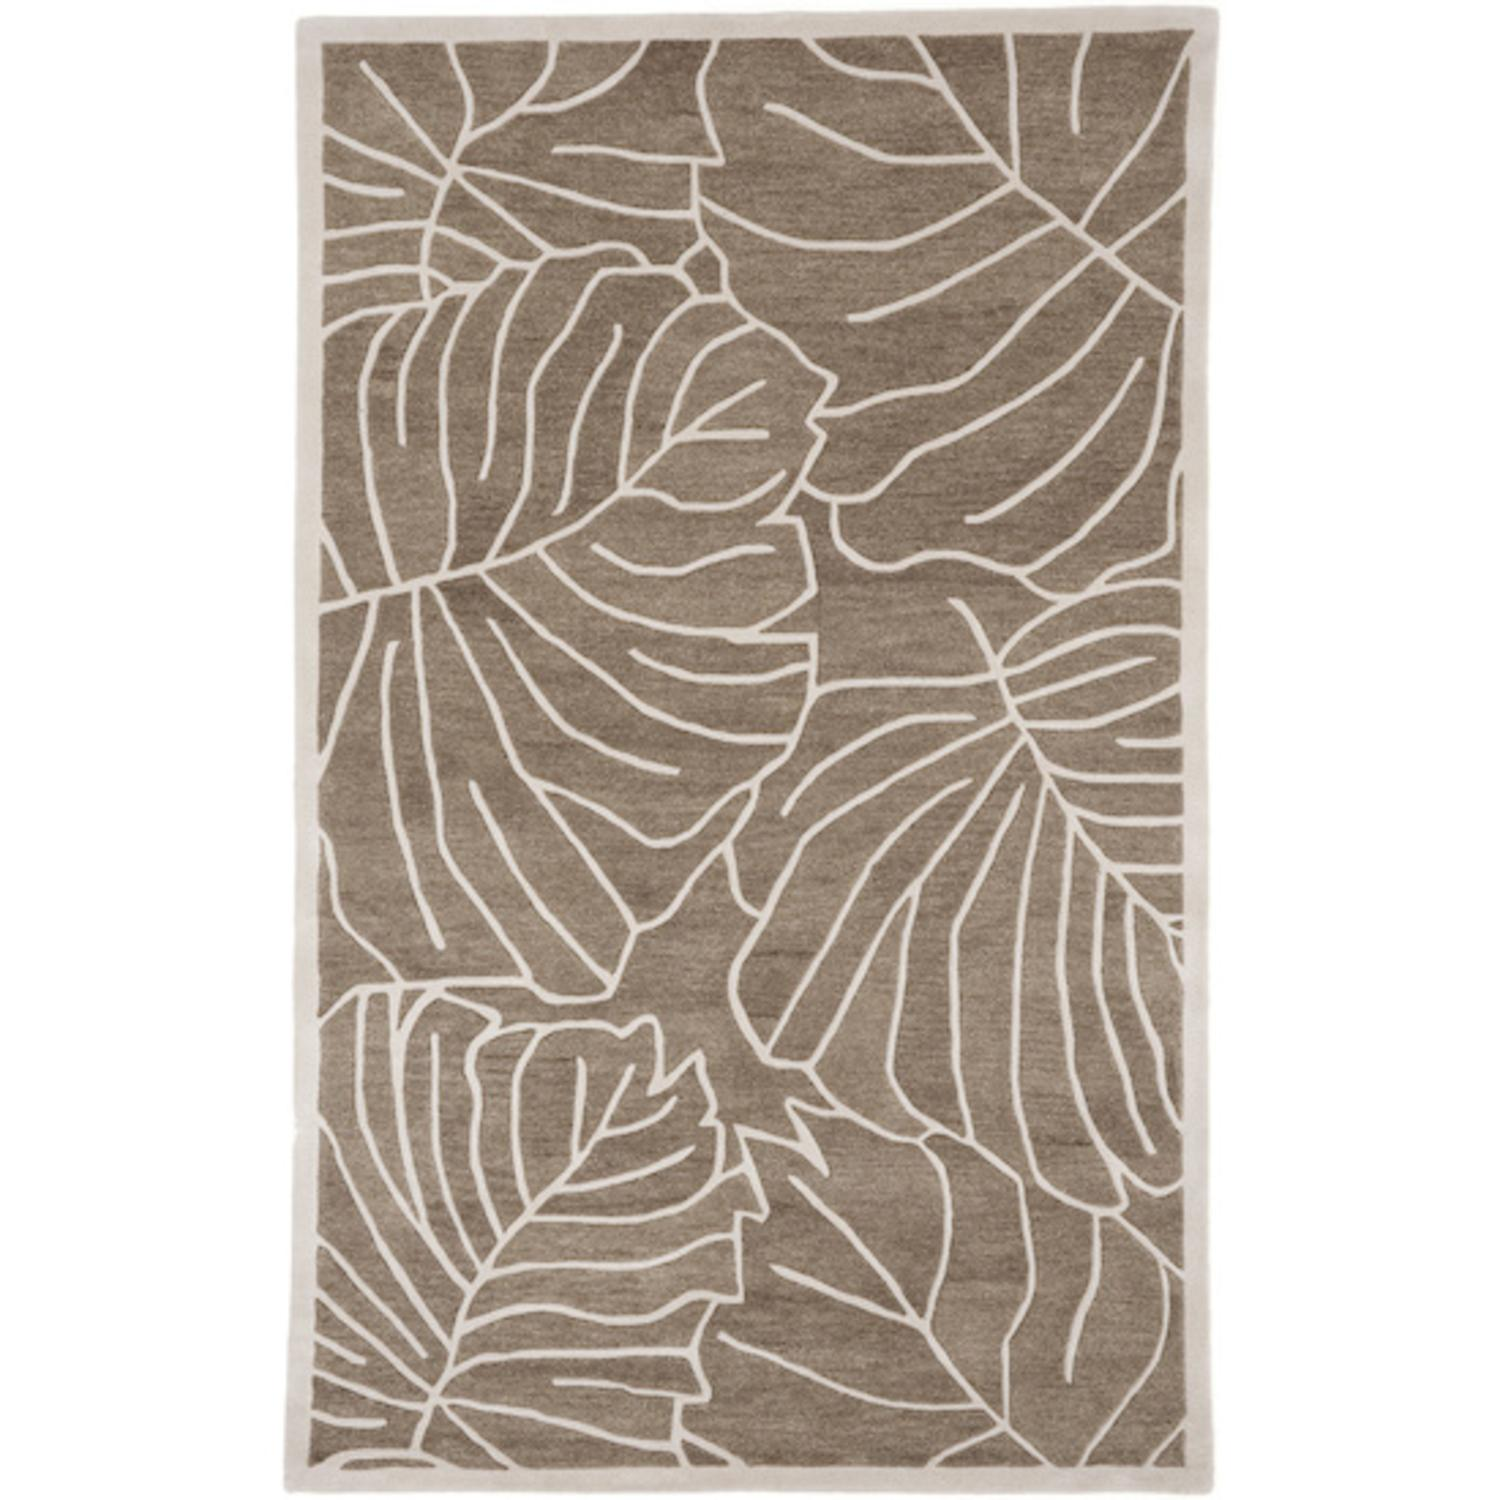 2' x 3' Leaf Me Alone Mushroom and Antique White Wool Area Throw Rug